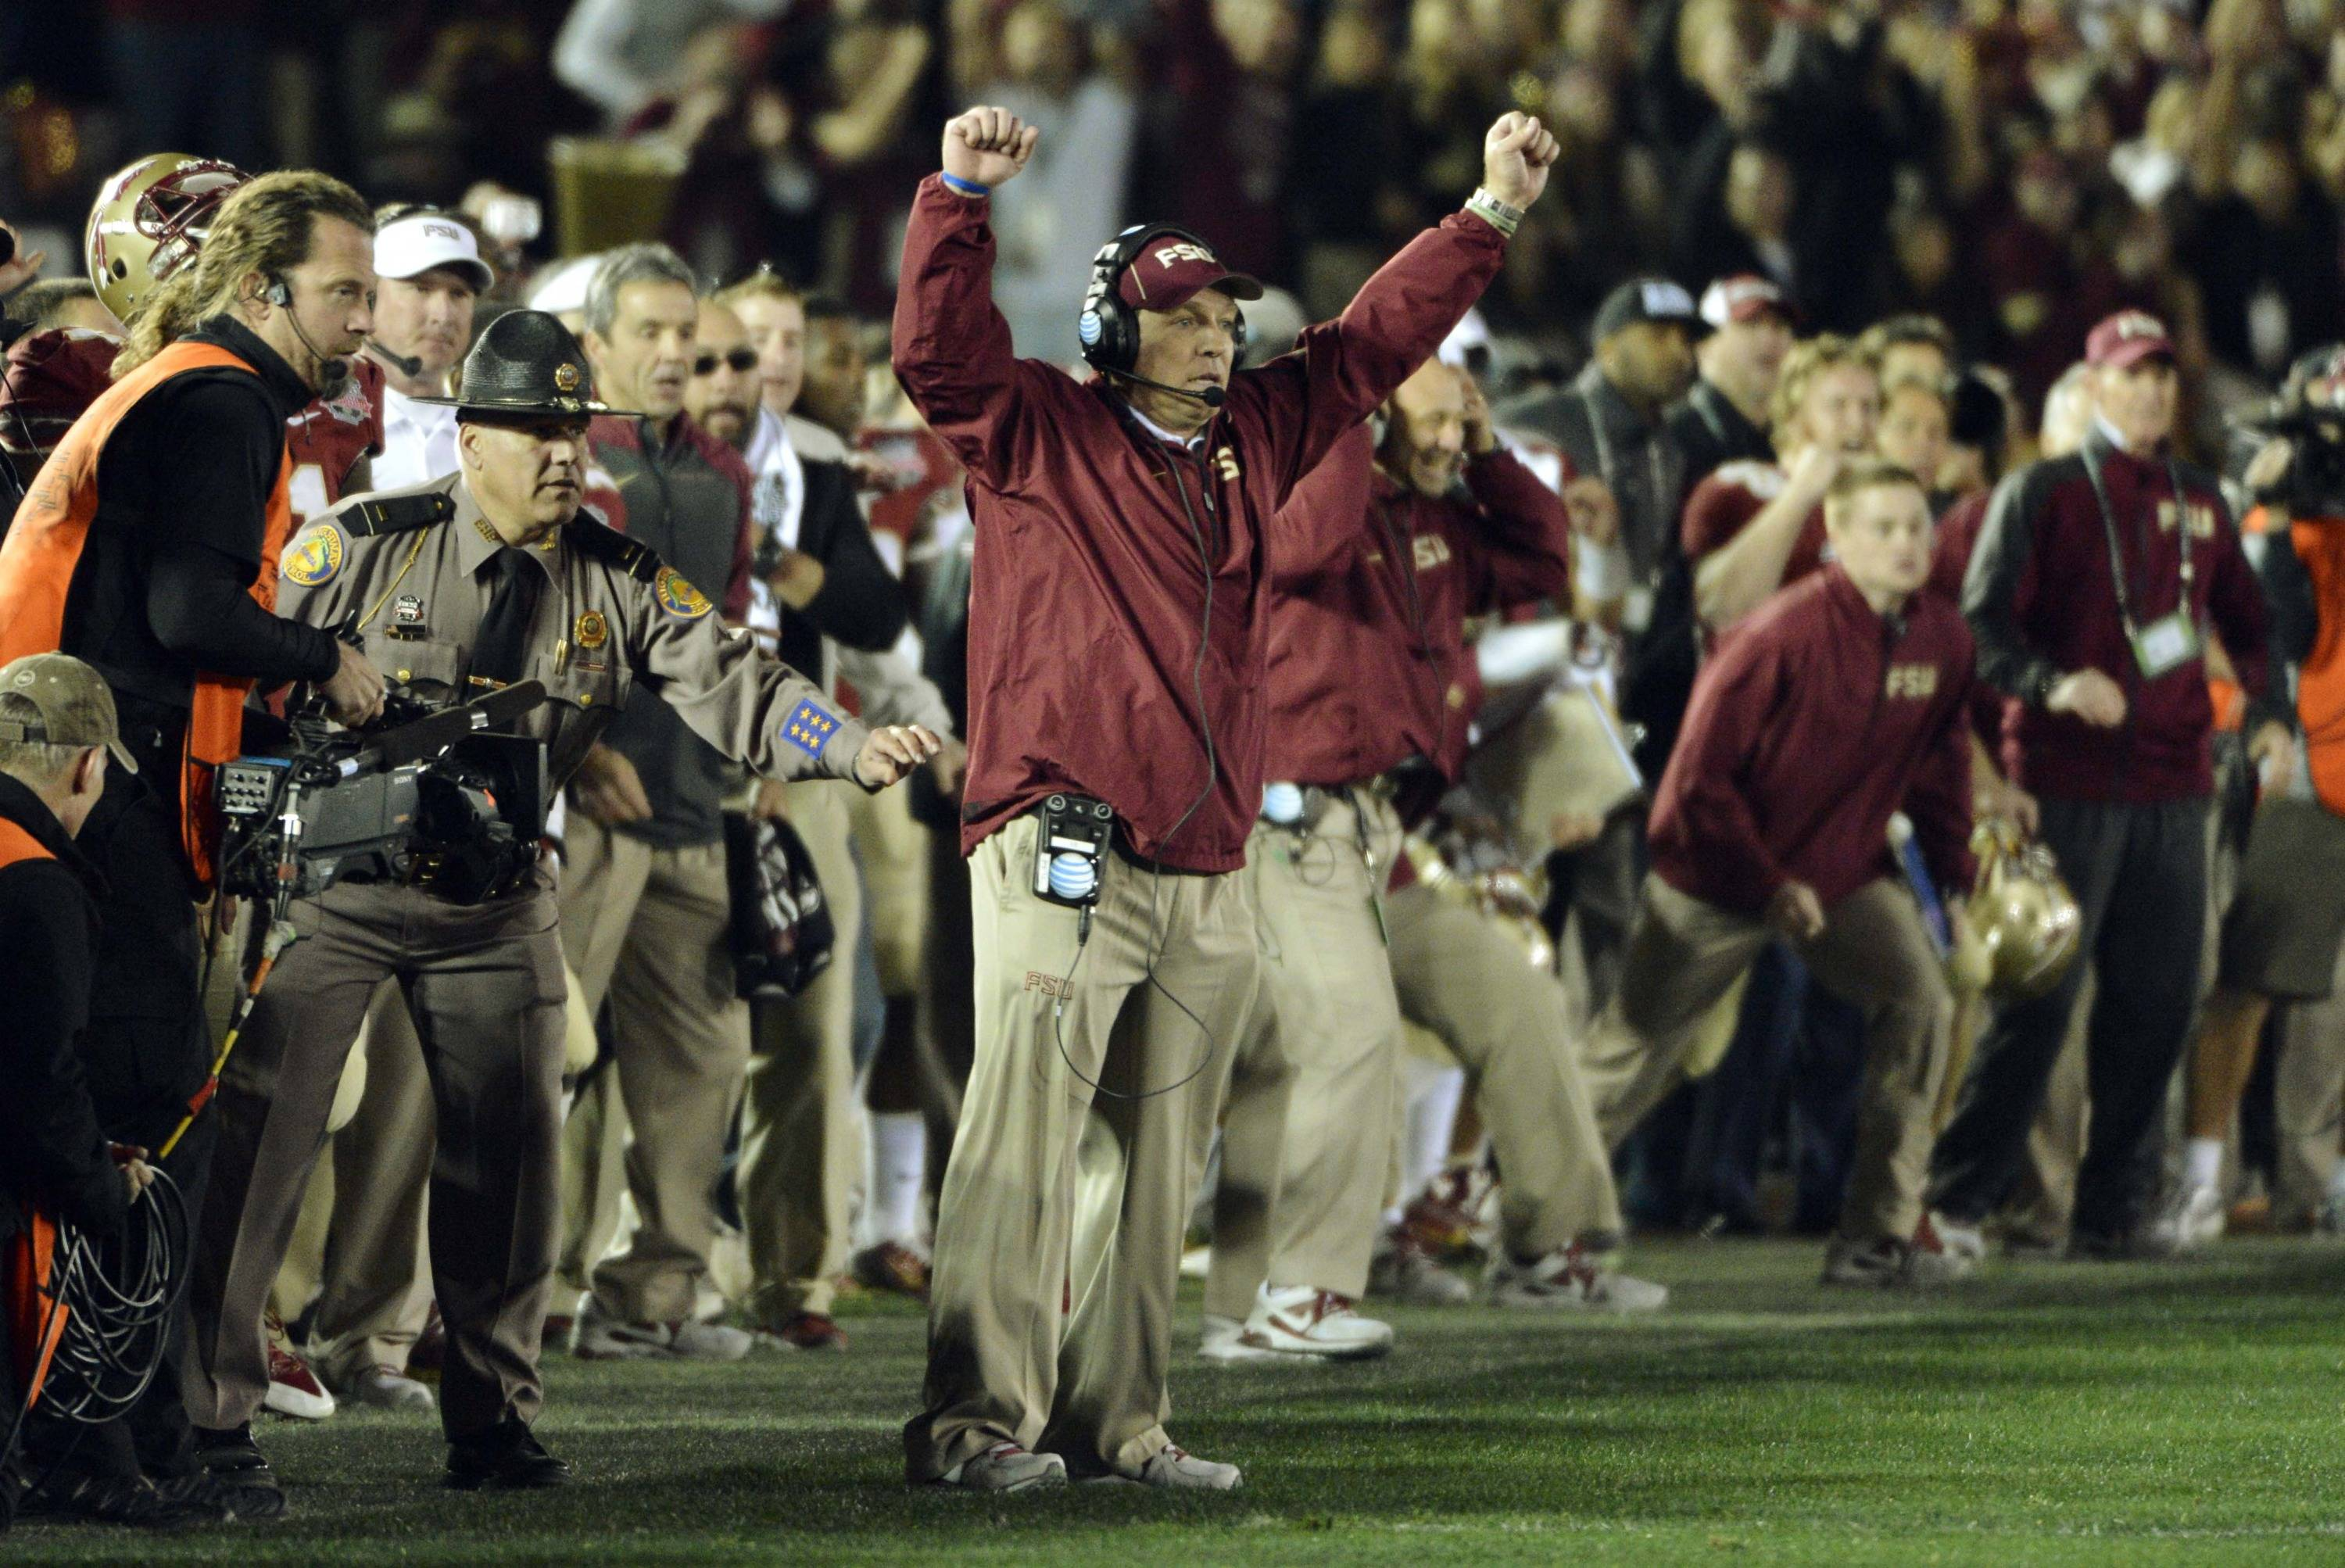 Jan 6, 2014; Pasadena, CA, USA; Florida State Seminoles head coach Jimbo Fisher celebrates with his coaches and team as time expires in the fourth quarter of the 2014 BCS National Championship game against the Auburn Tigers at the Rose Bowl.  Mandatory Credit: Robert Hanashiro-USA TODAY Sports